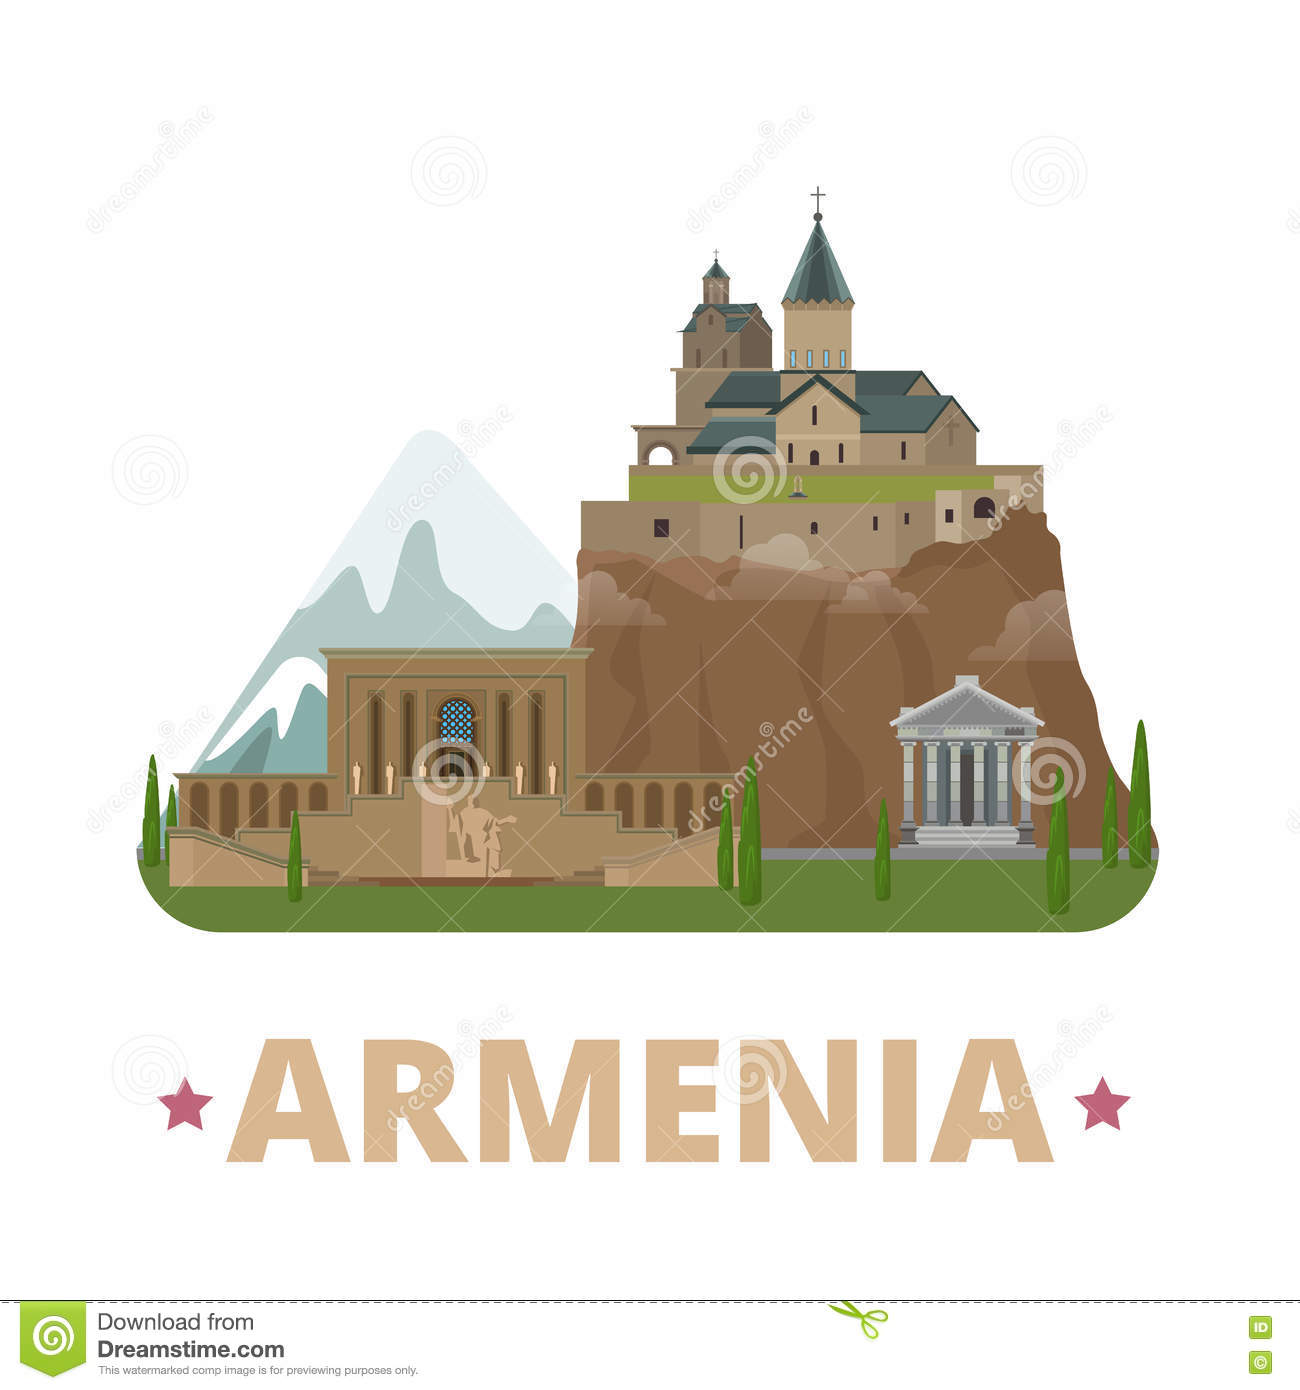 Armenia Country Design Template Flat Cartoon Style Stock ...